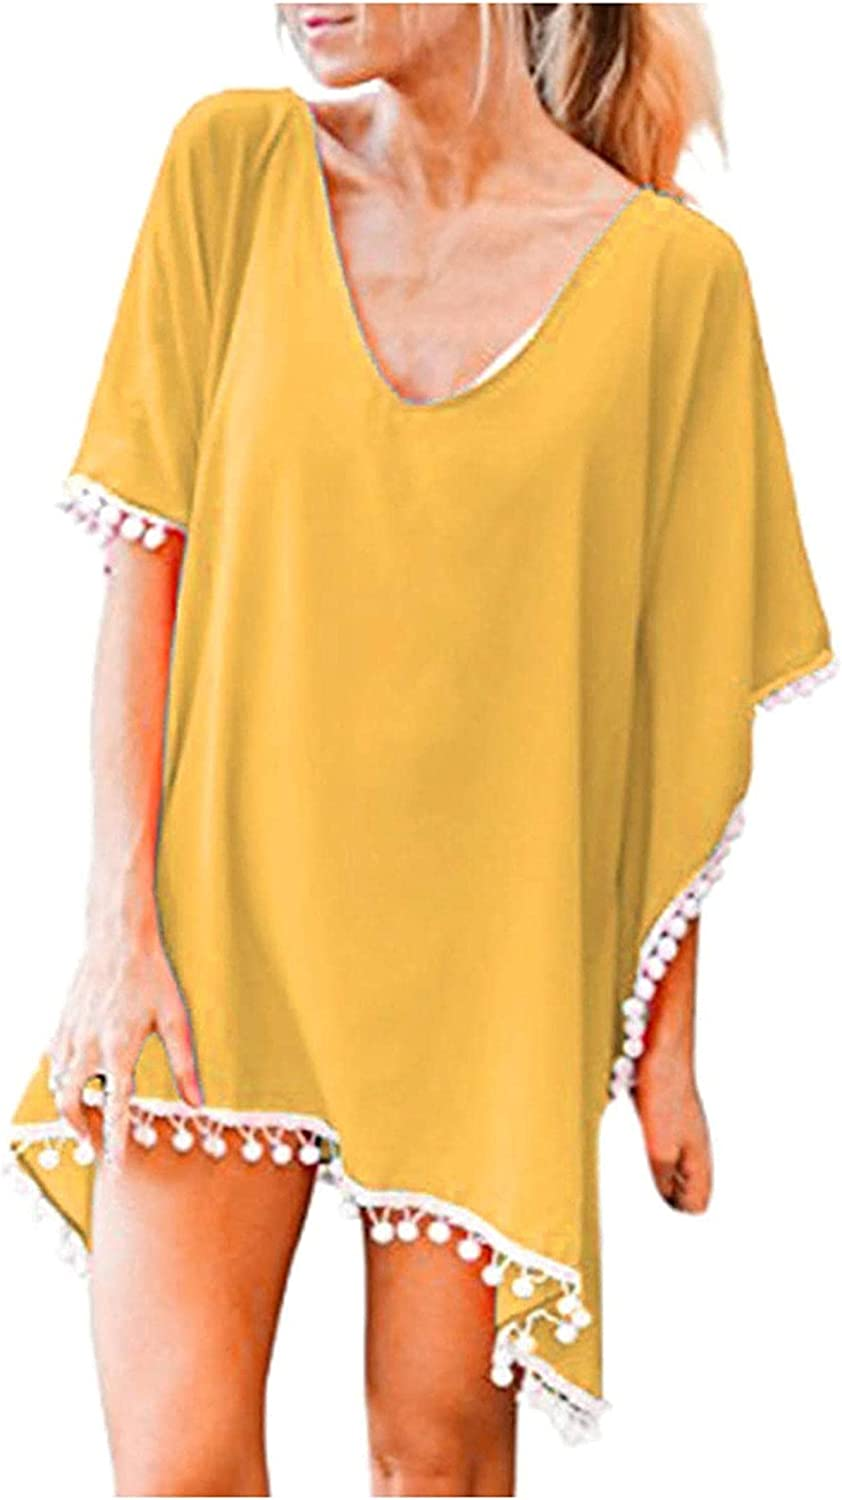 Womens Swimsuit Cover Up 2021 Beach Cover Ups Dress Plus Size Cover Ups Trim Kaftan Chiffon Tassels Loose Tops